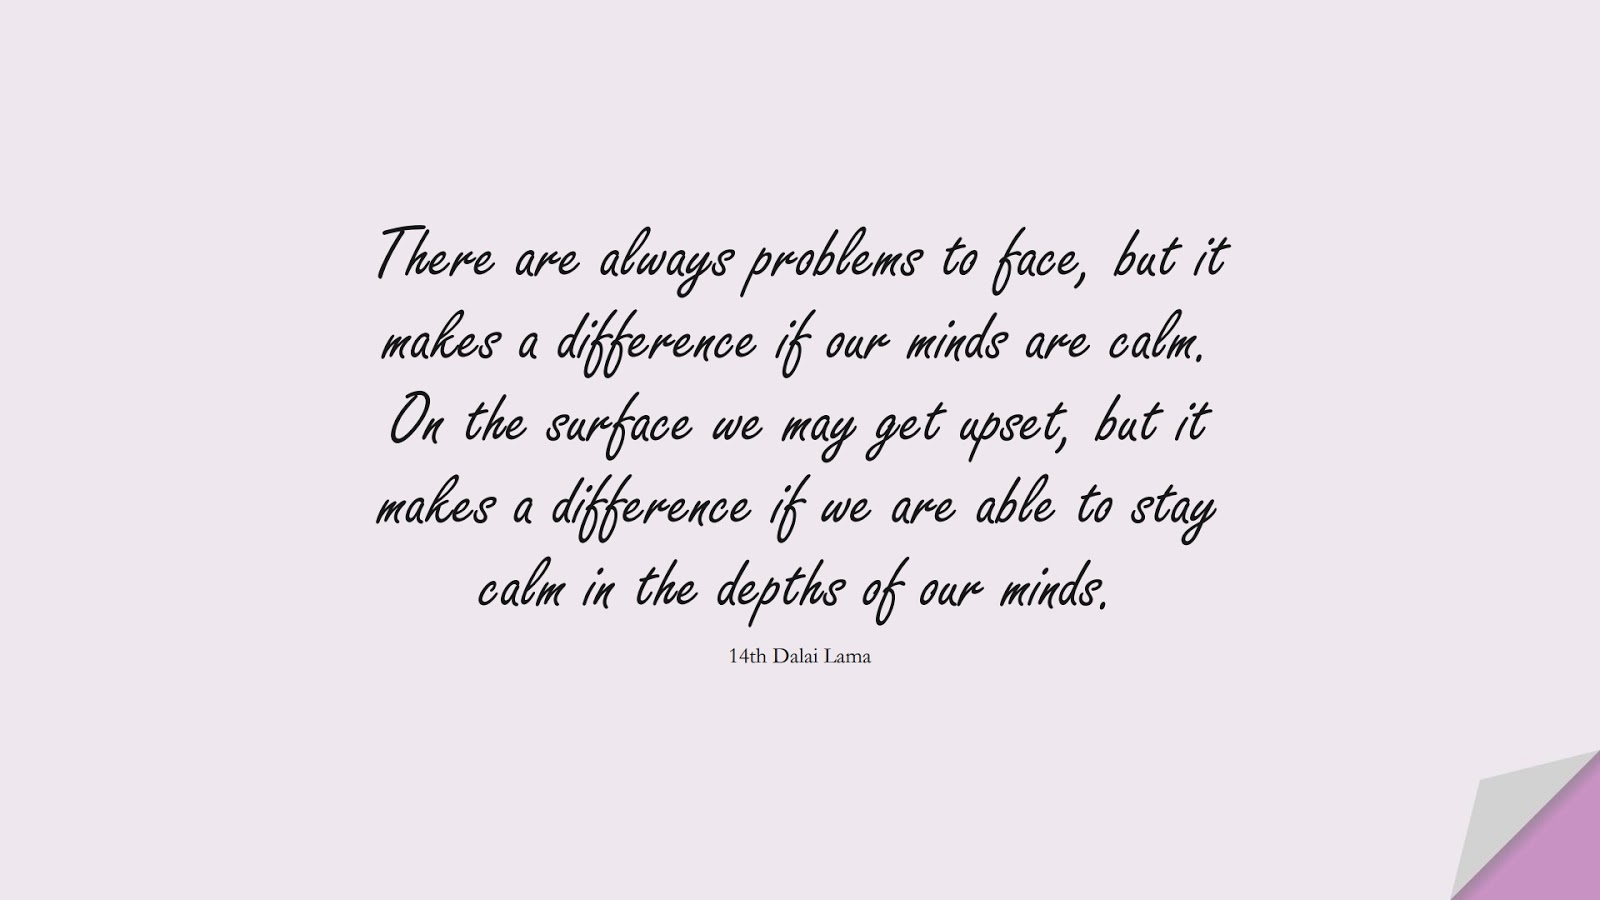 There are always problems to face, but it makes a difference if our minds are calm. On the surface we may get upset, but it makes a difference if we are able to stay calm in the depths of our minds. (14th Dalai Lama);  #CalmQuotes